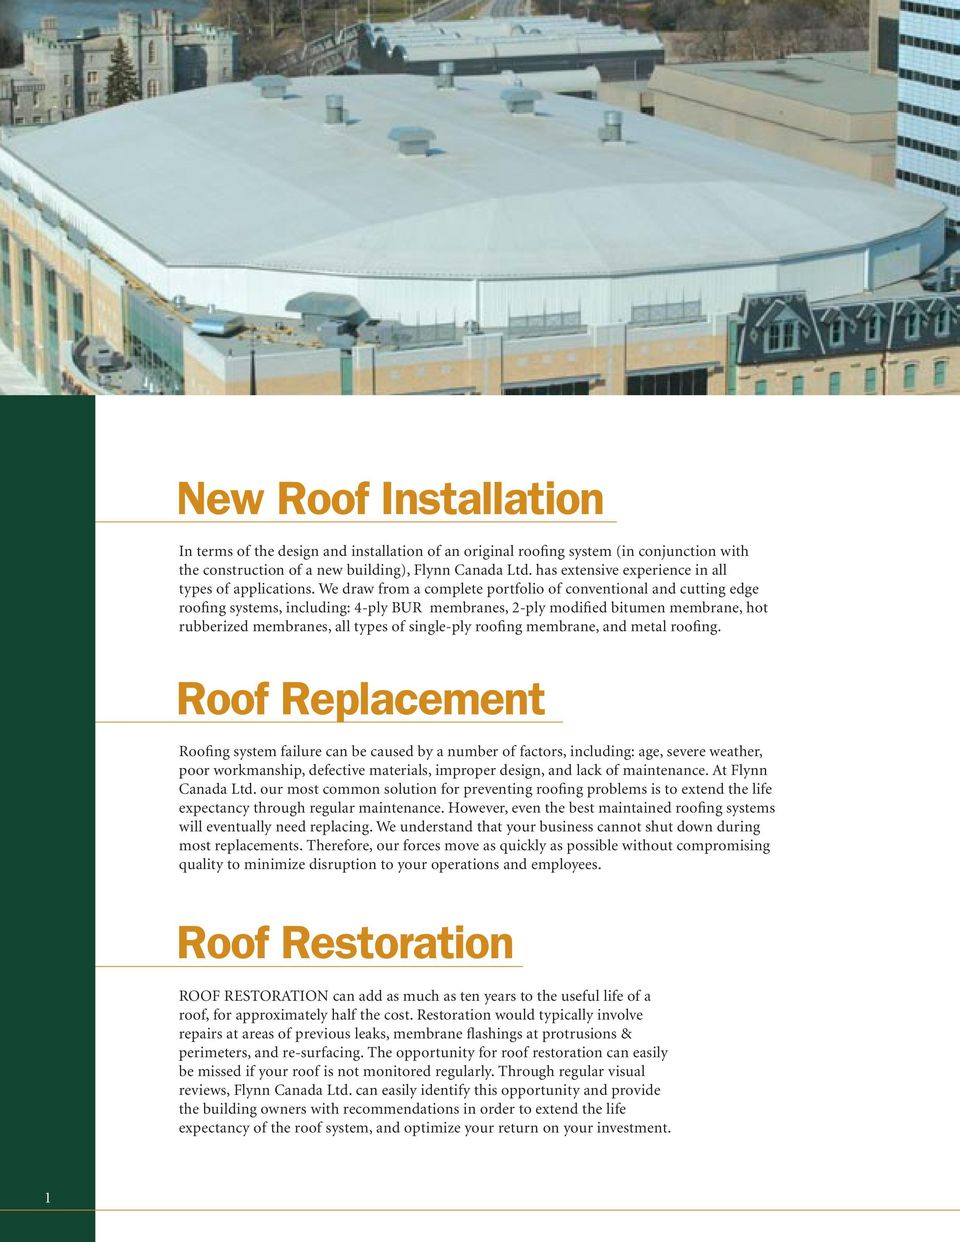 We draw from a complete portfolio of conventional and cutting edge roofing systems, including: 4-ply BUR membranes, 2-ply modified bitumen membrane, hot rubberized membranes, all types of single-ply